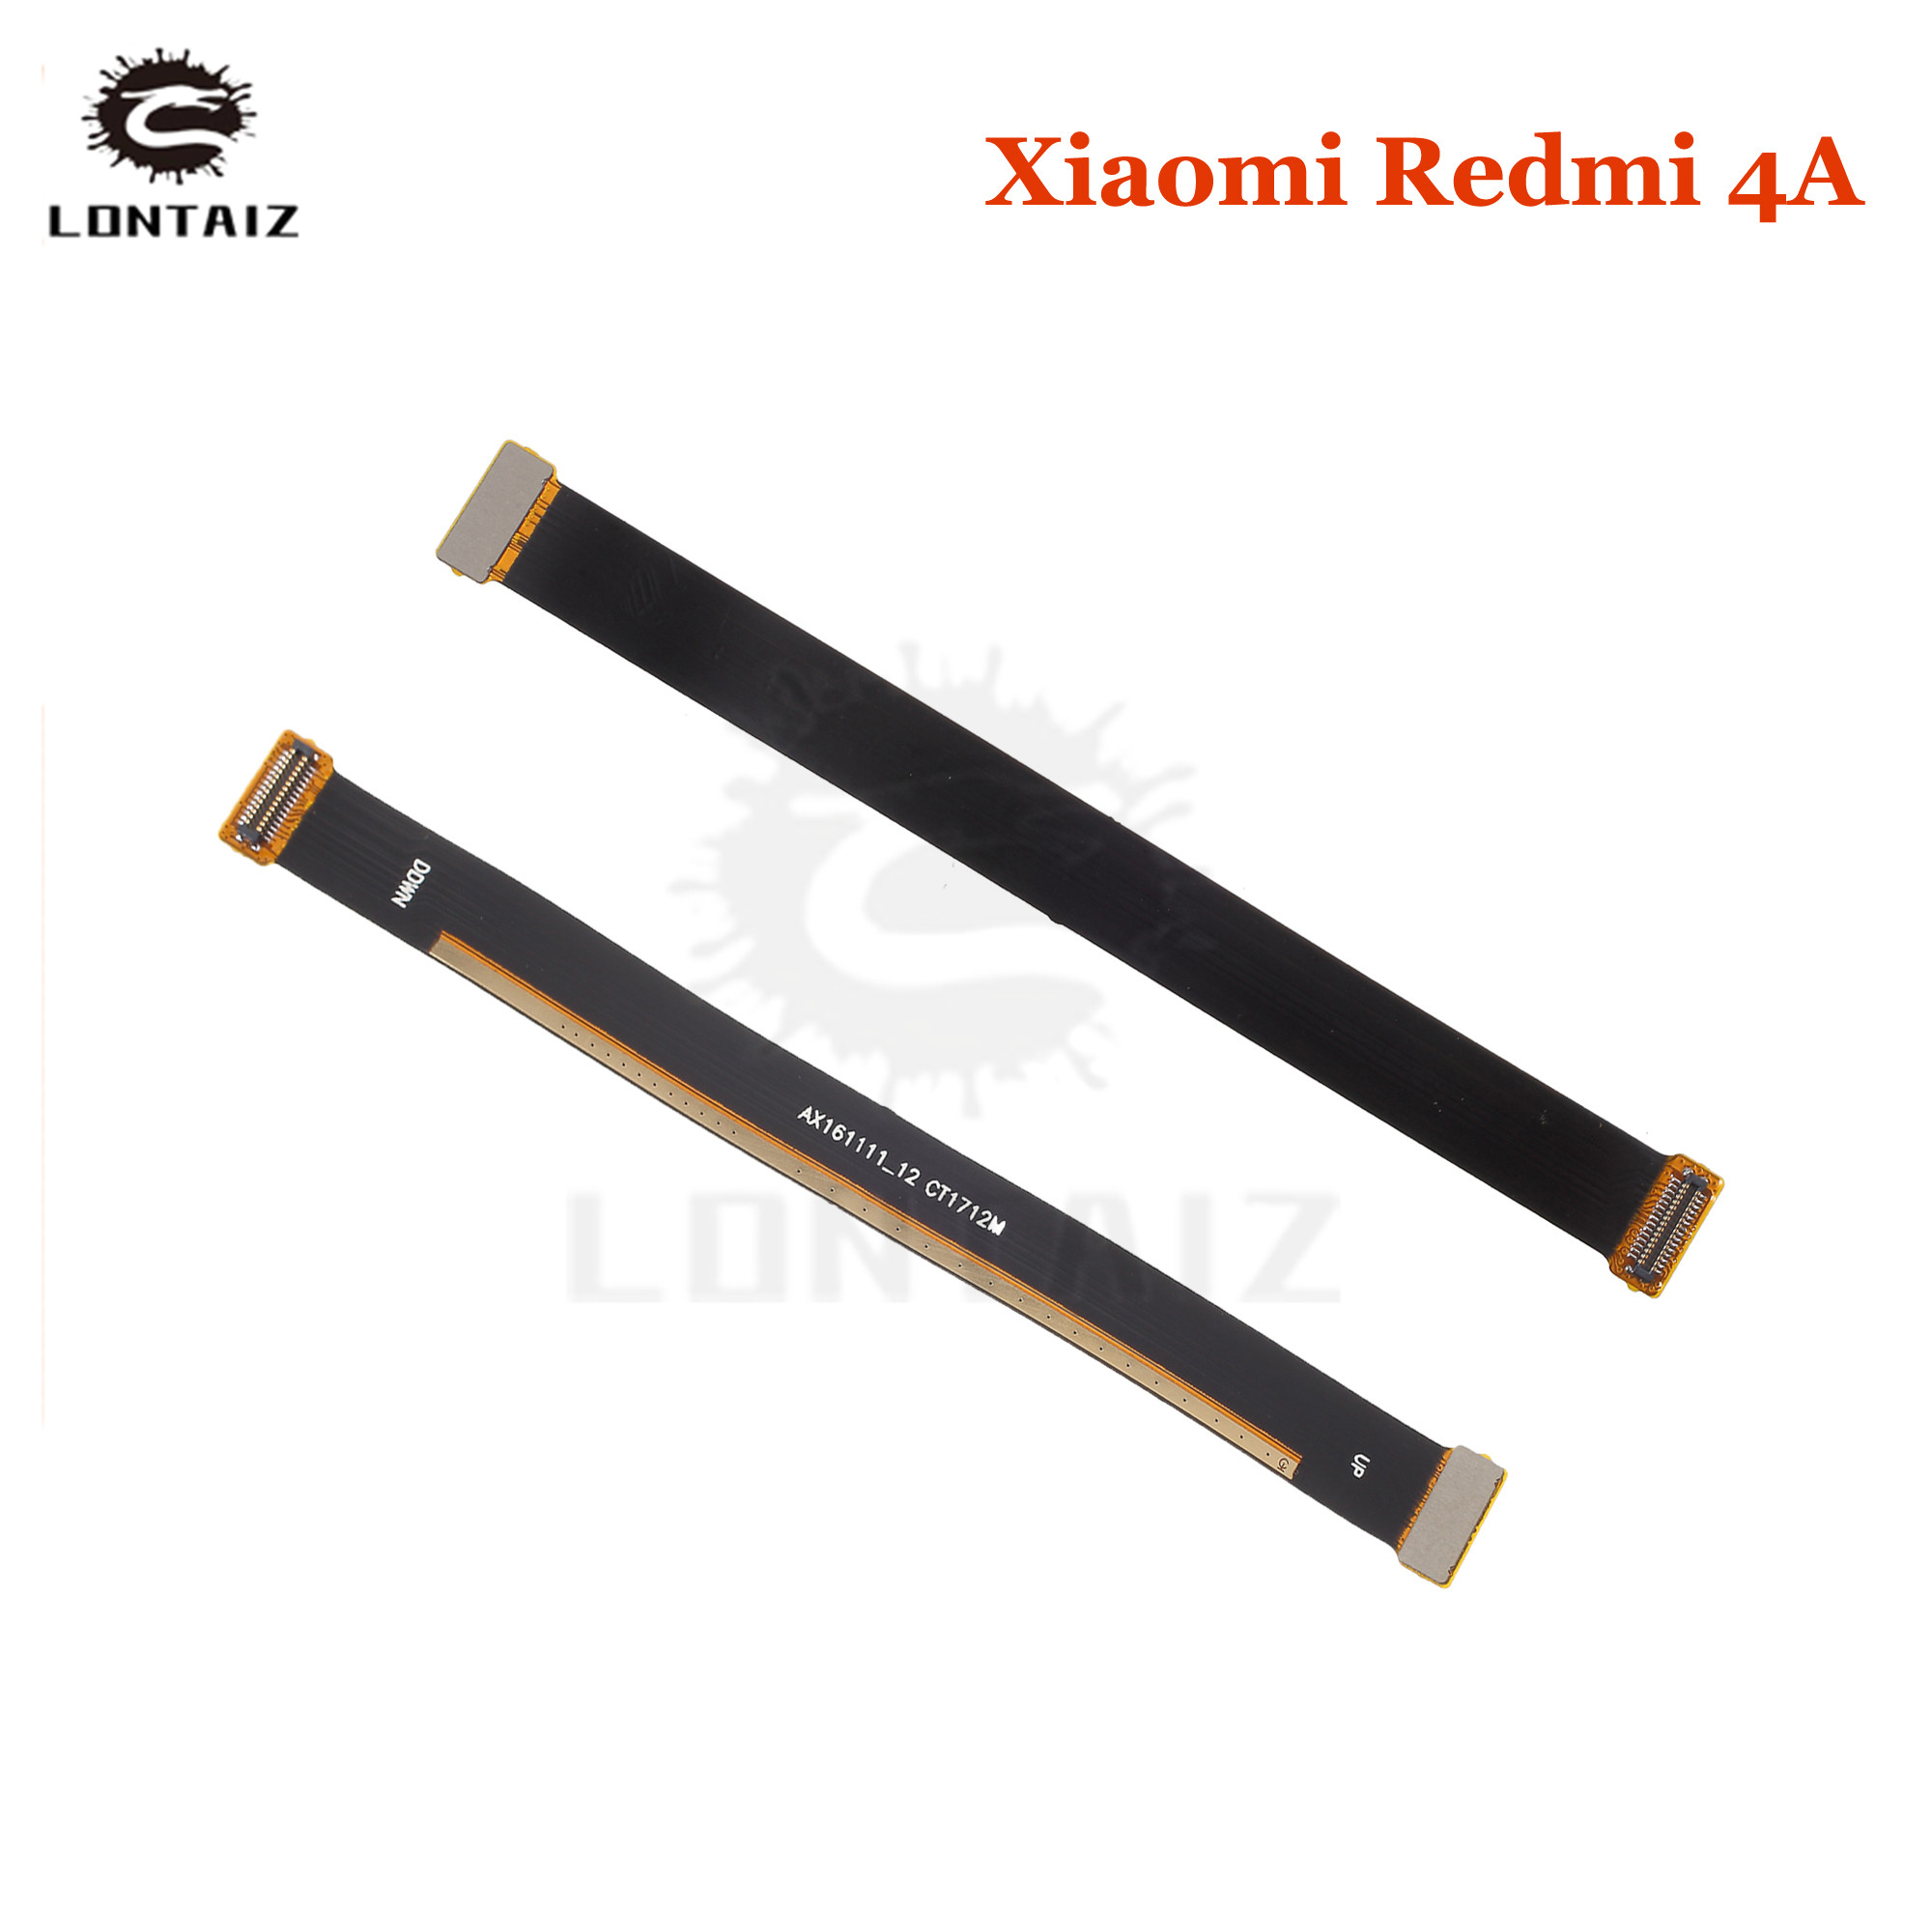 Good quality and cheap redmi 4x motherboard in Store Xprice